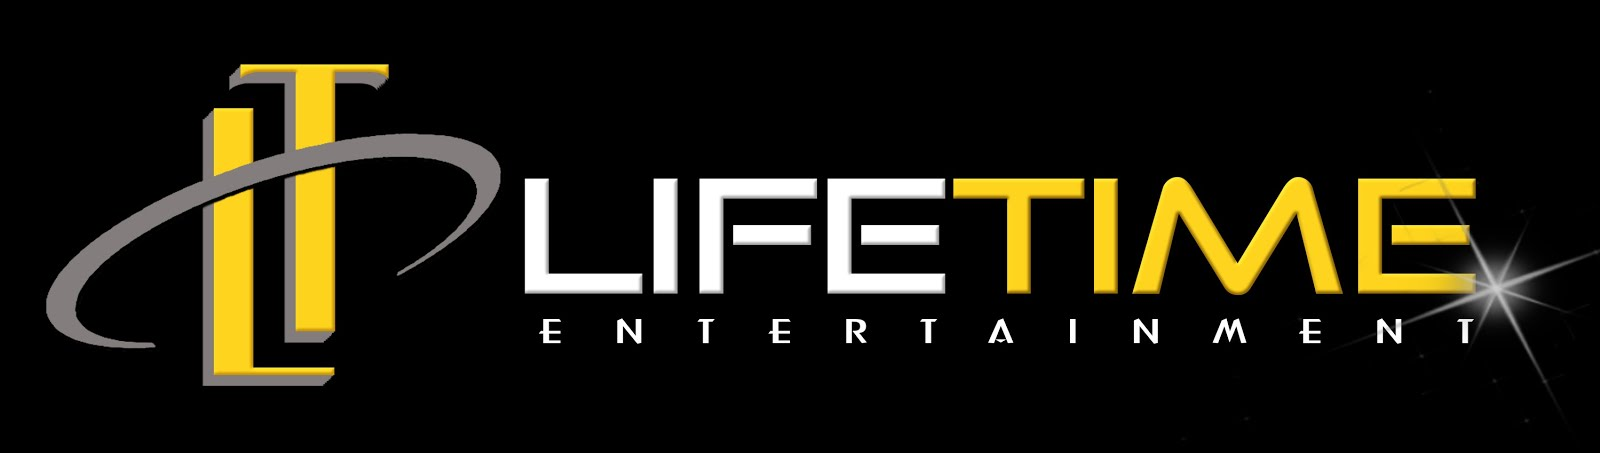 Lifetime Entertainment